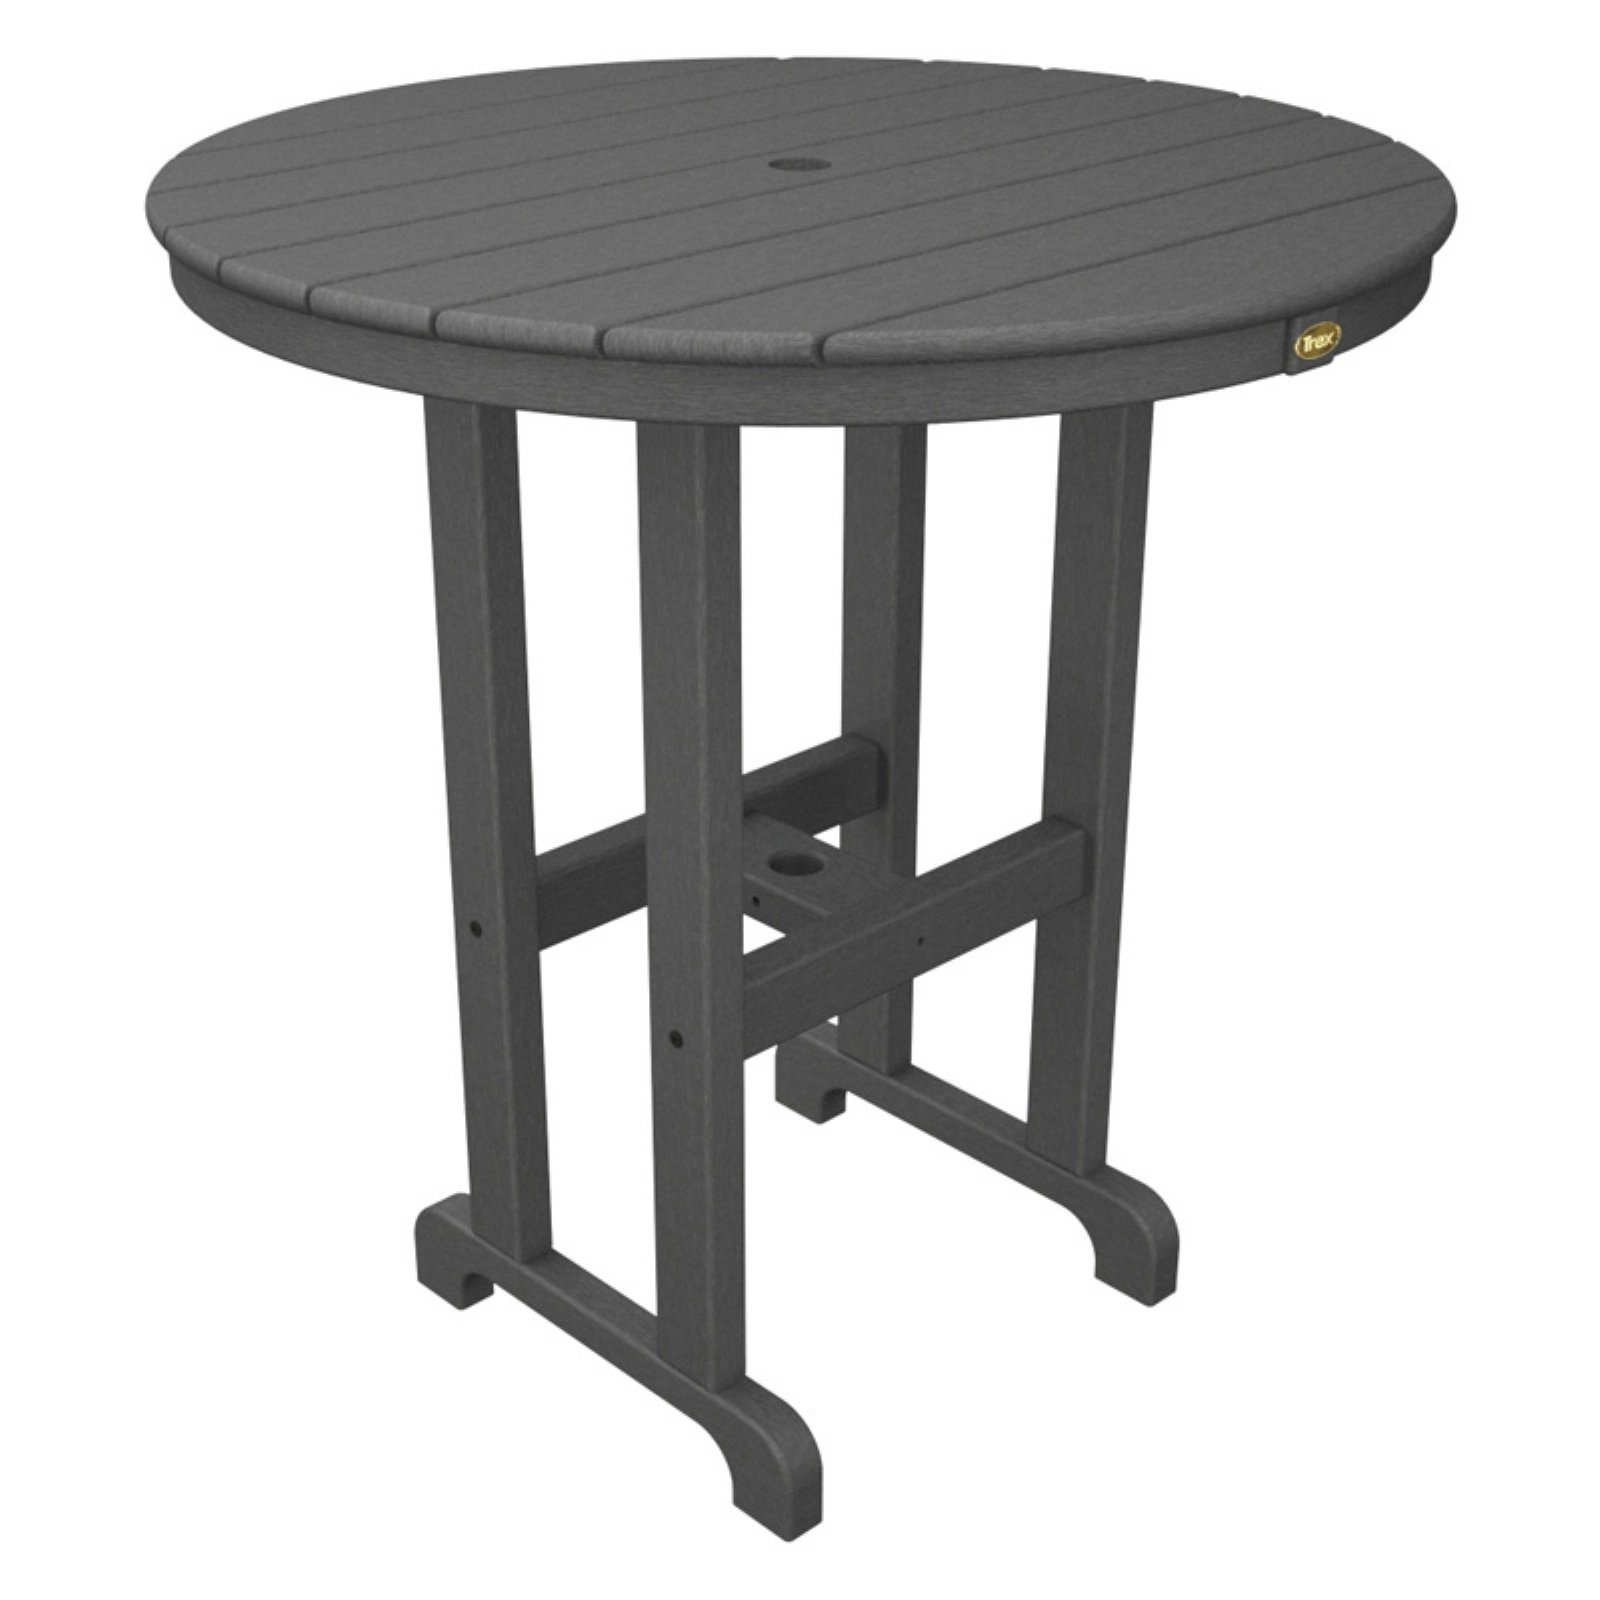 Trex Outdoor Furniture Recycled Plastic Monterey Bay Round Counter Height Table